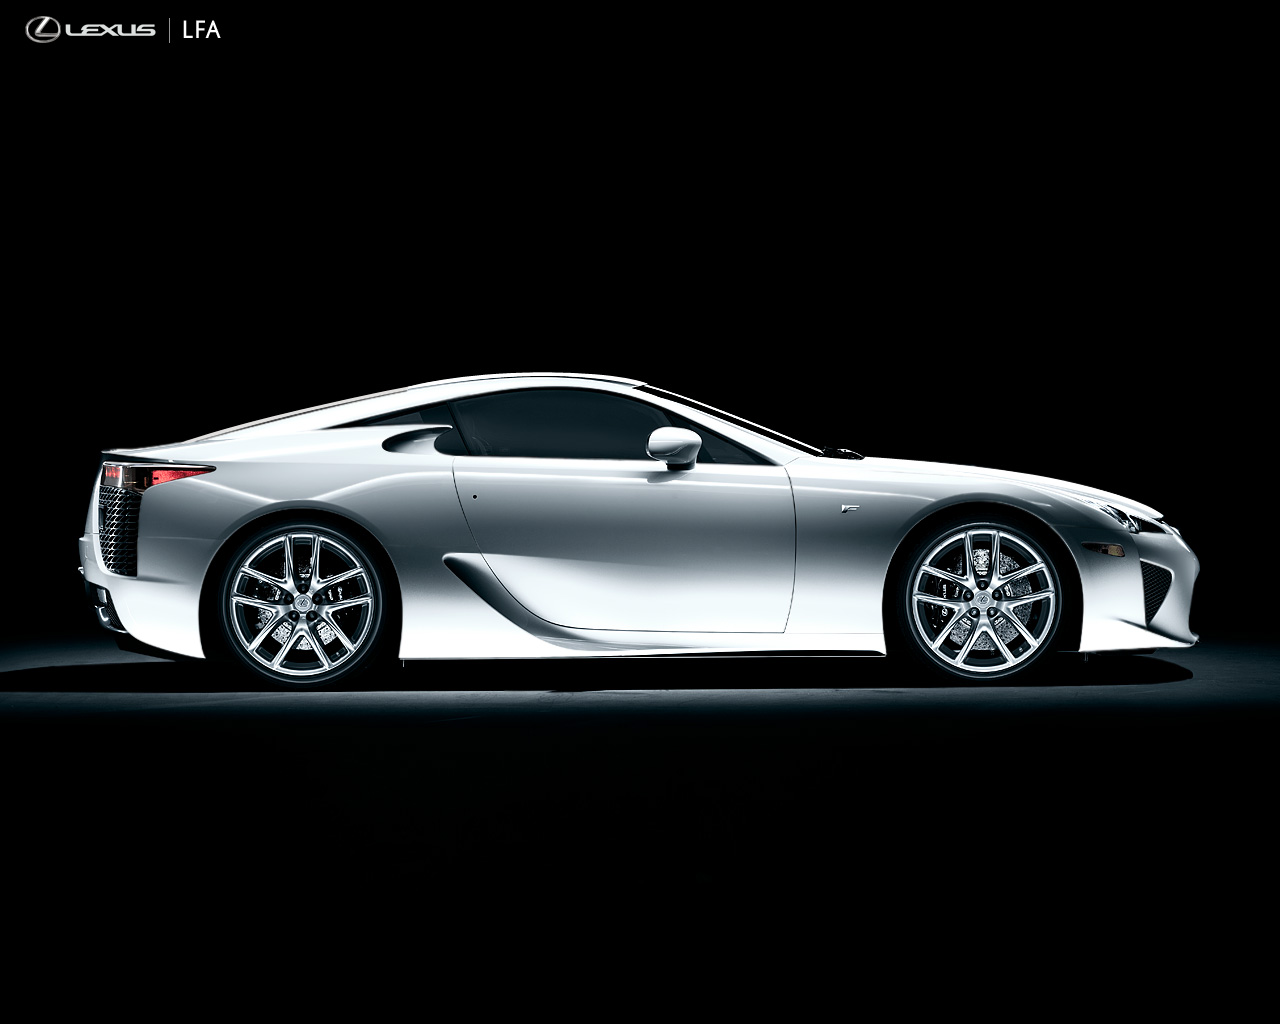 Lamborghini Cars Photos Wallpapers 2012 Lexus Lfa Wallpapers Car Wallpapers